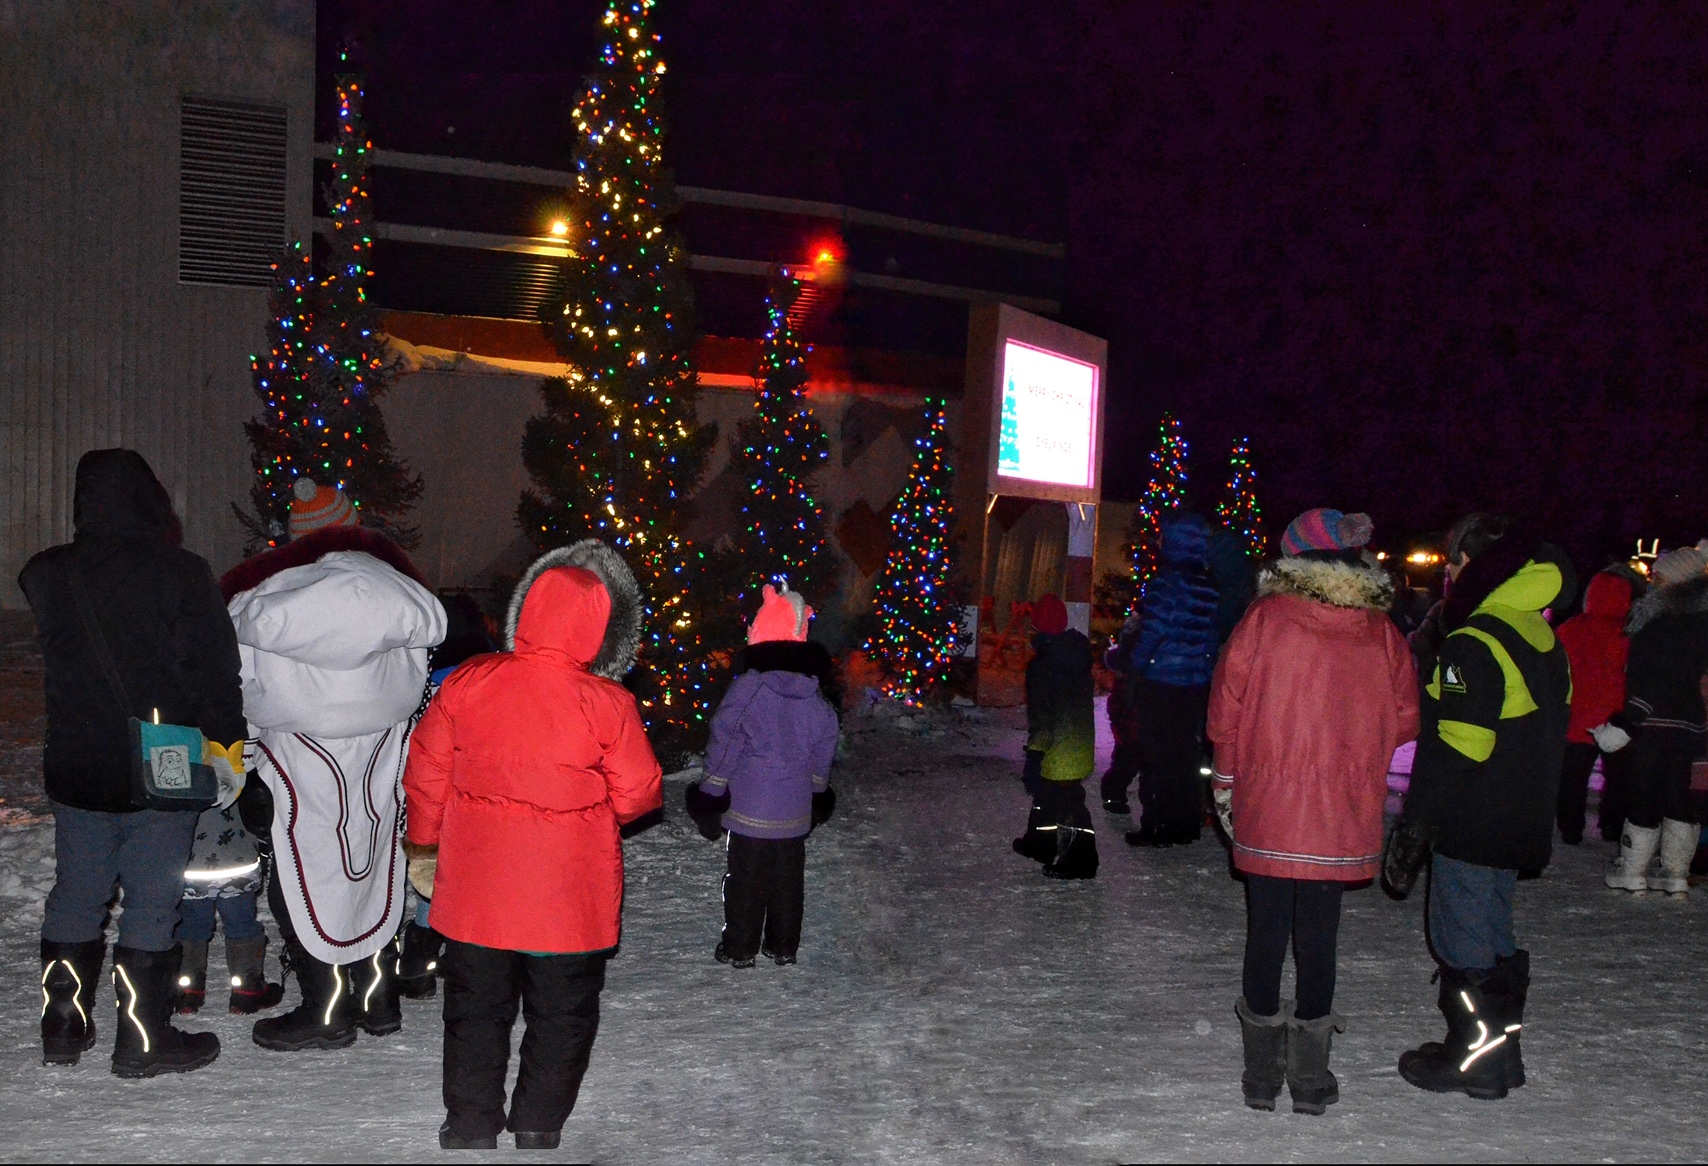 Kuujjuaq residents gather in front of the northern village office for the lighting of Christmas trees on Dec. 21. (Photo by Isabelle Dubois)